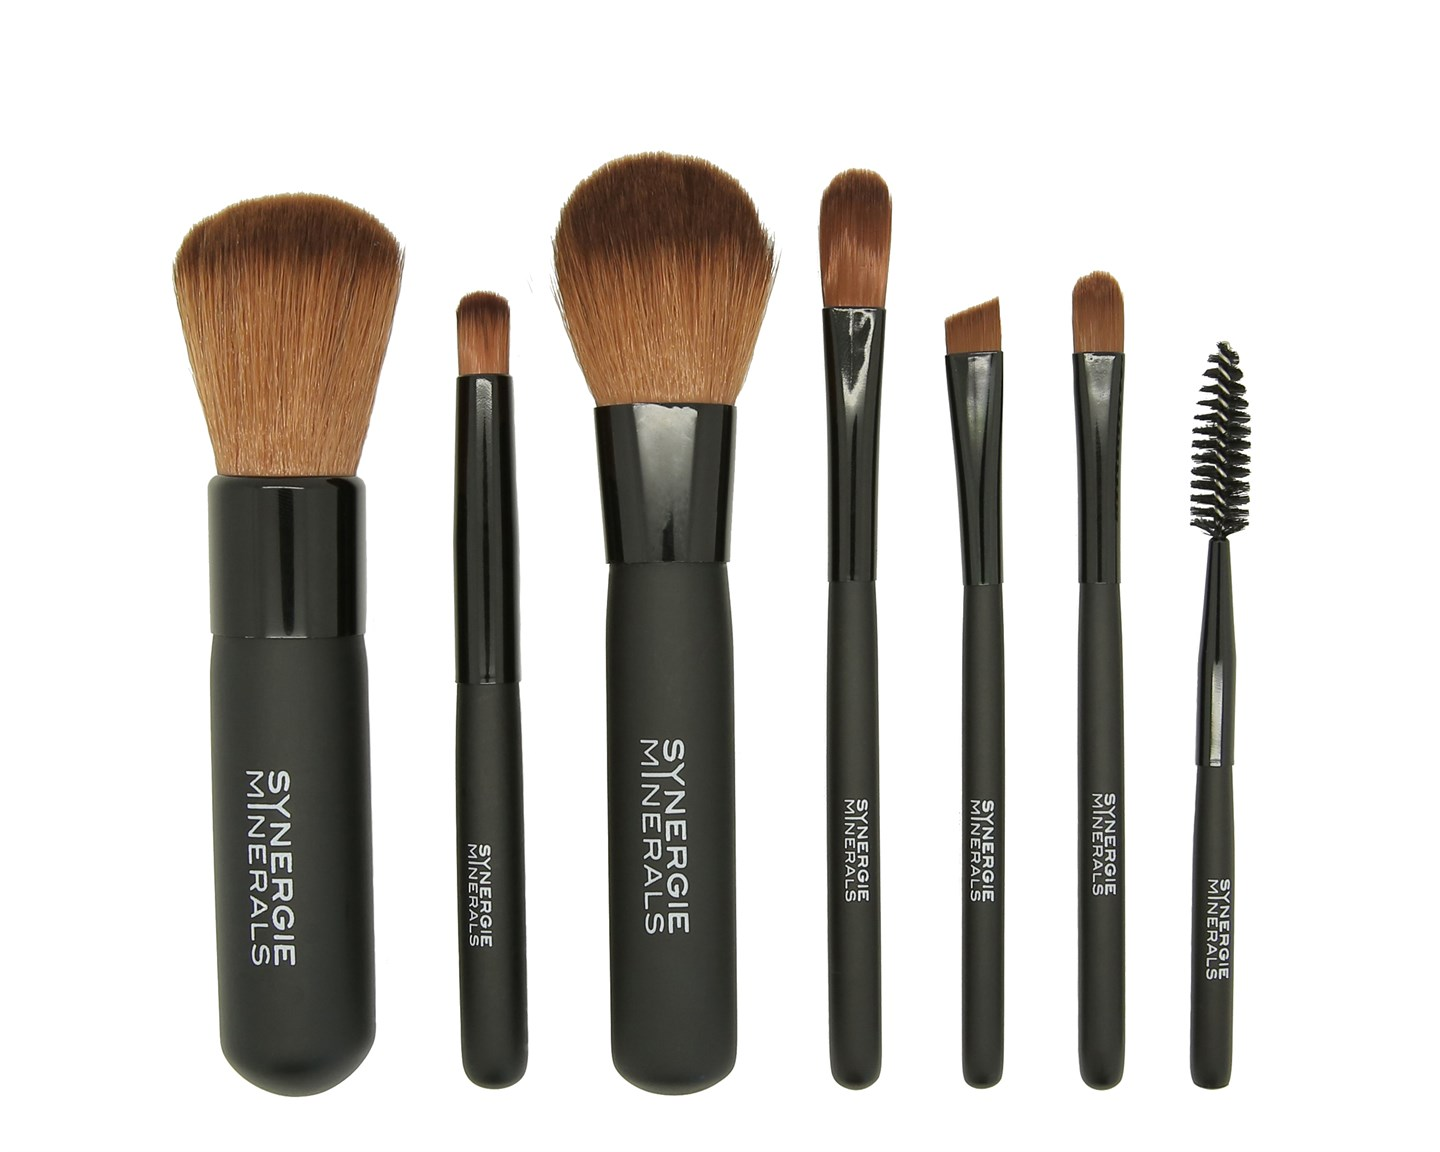 Synergie Minerals Travel Essential Brush Kit